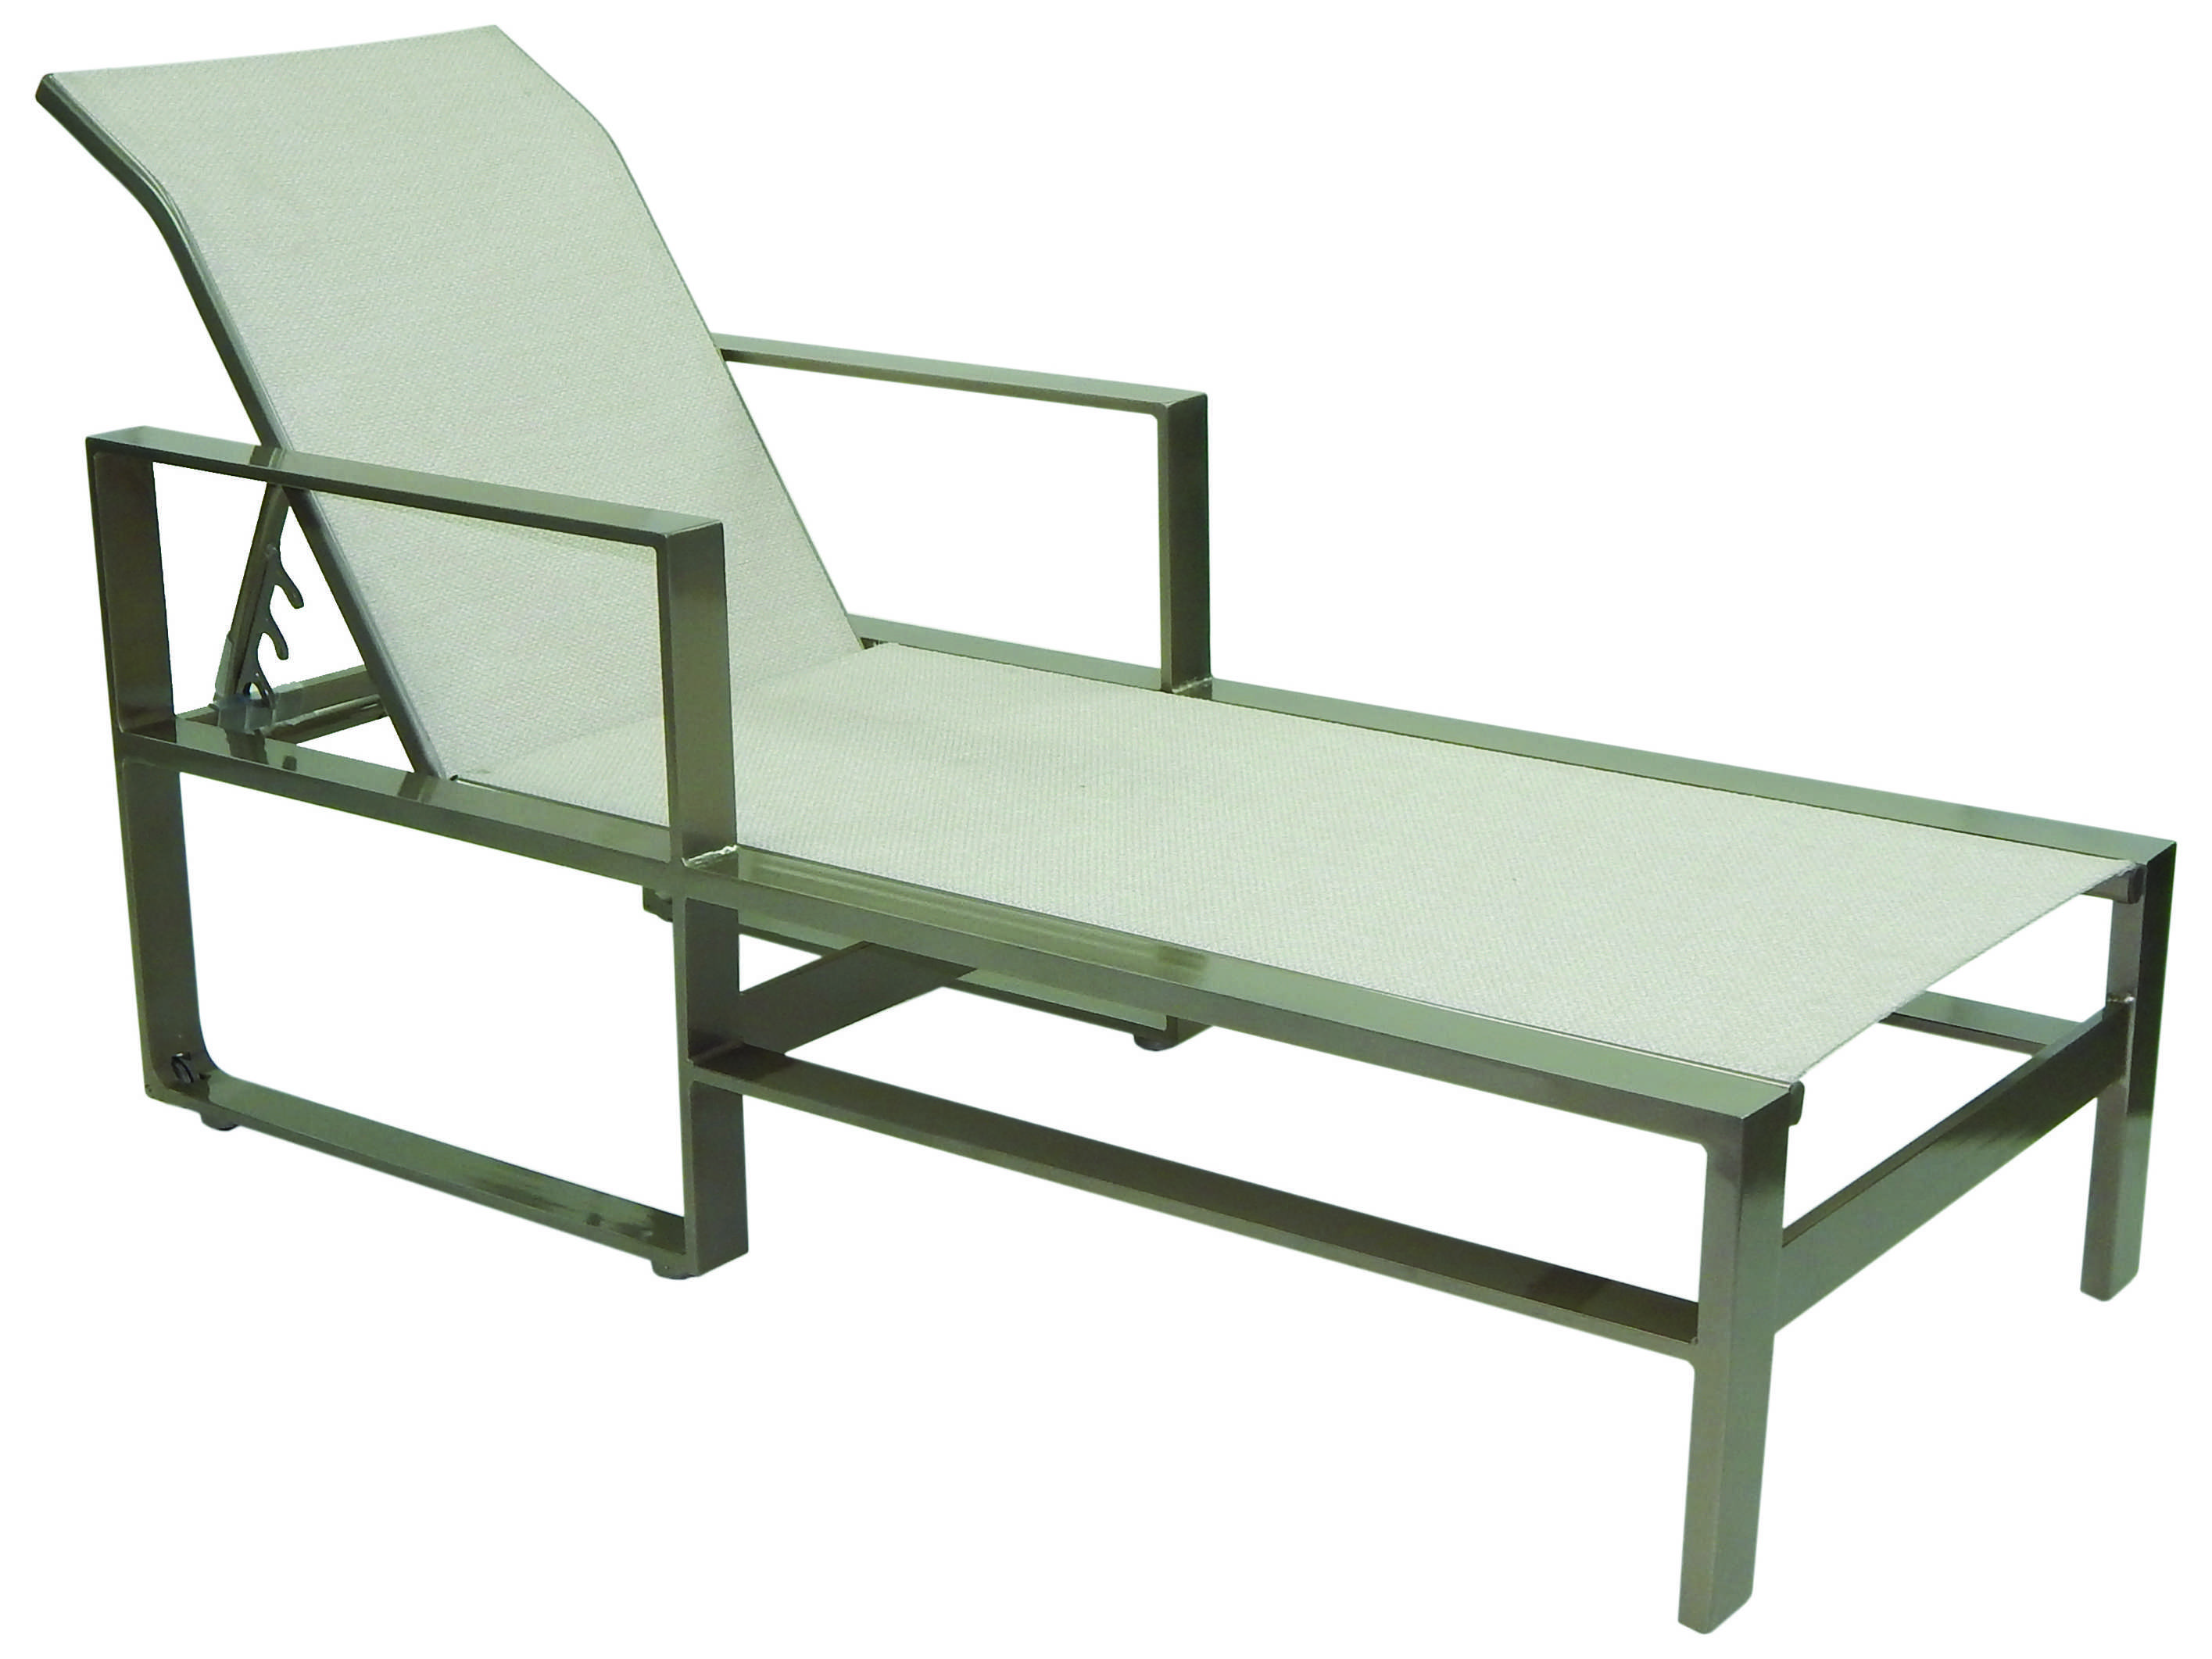 Castelle park place slin cast aluminum adjustable chaise for Cast aluminum chaise